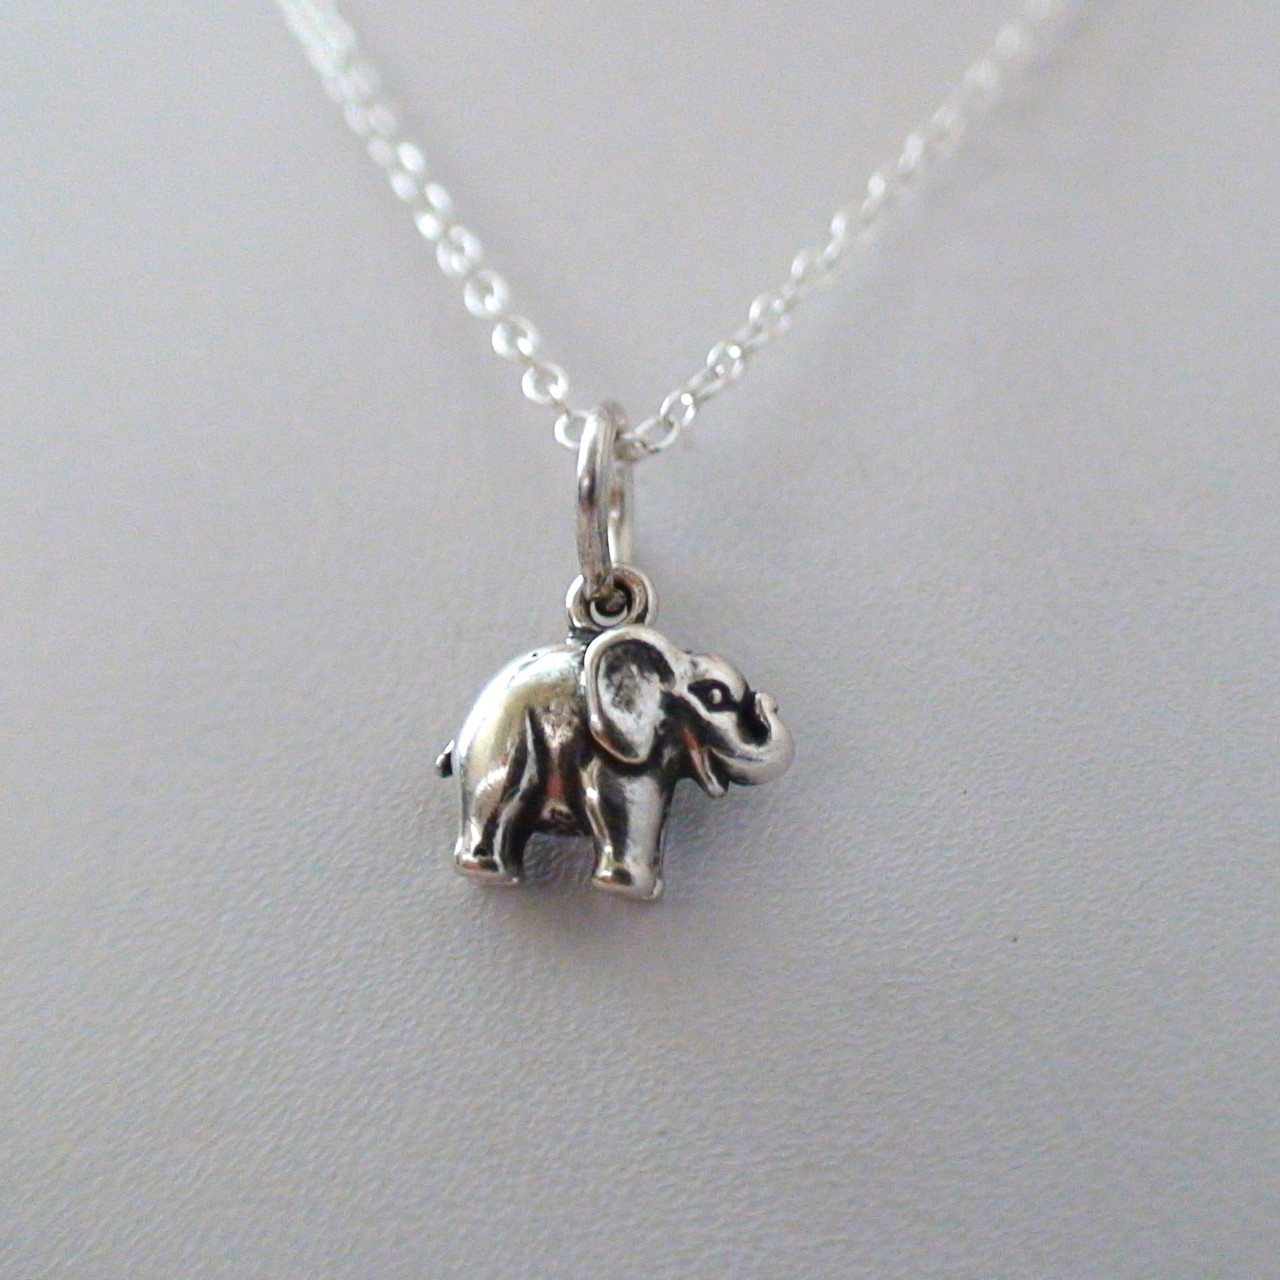 Tiny elephant necklace 925 sterling silver tiny sterling silver elephant charm necklace mozeypictures Image collections